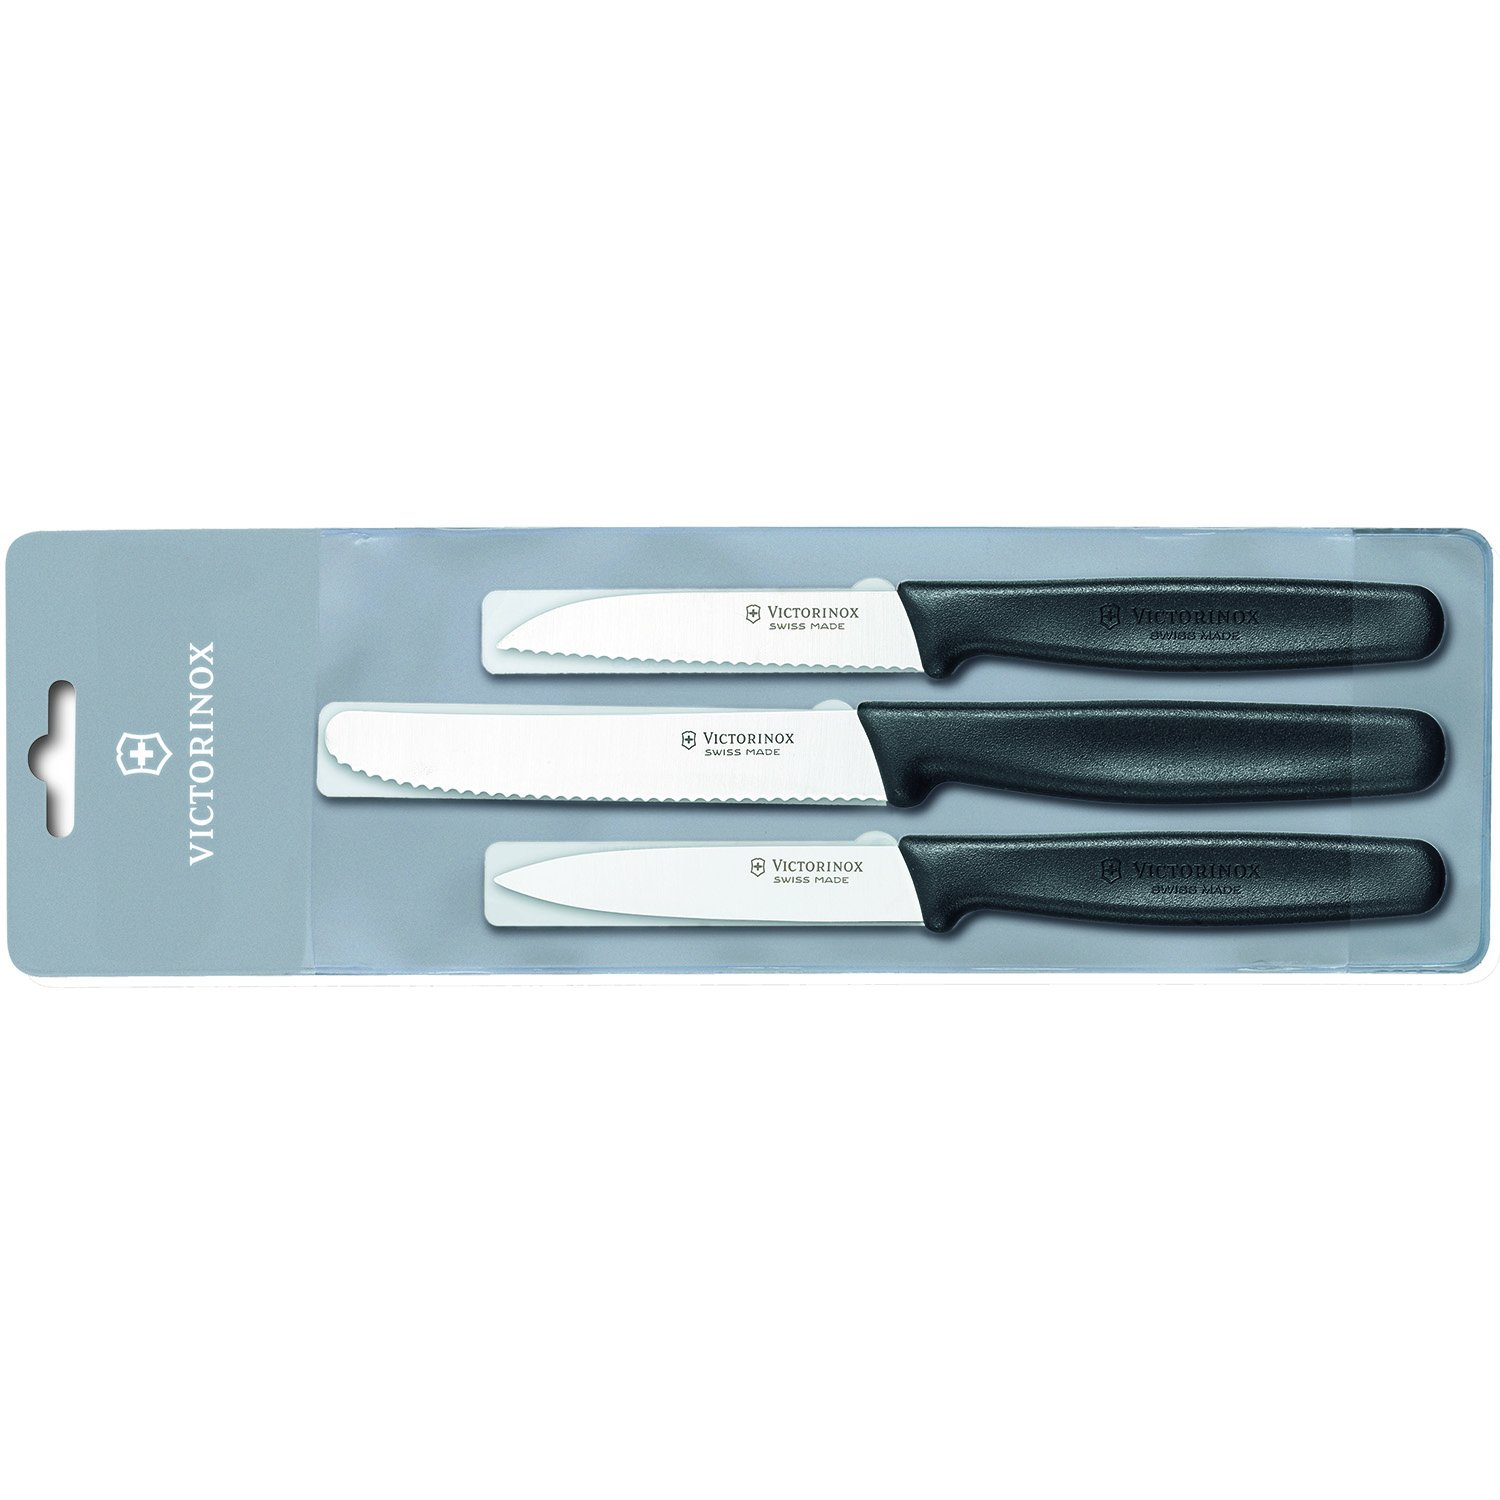 Victorinox 3-Piece Kitchen Knife Set